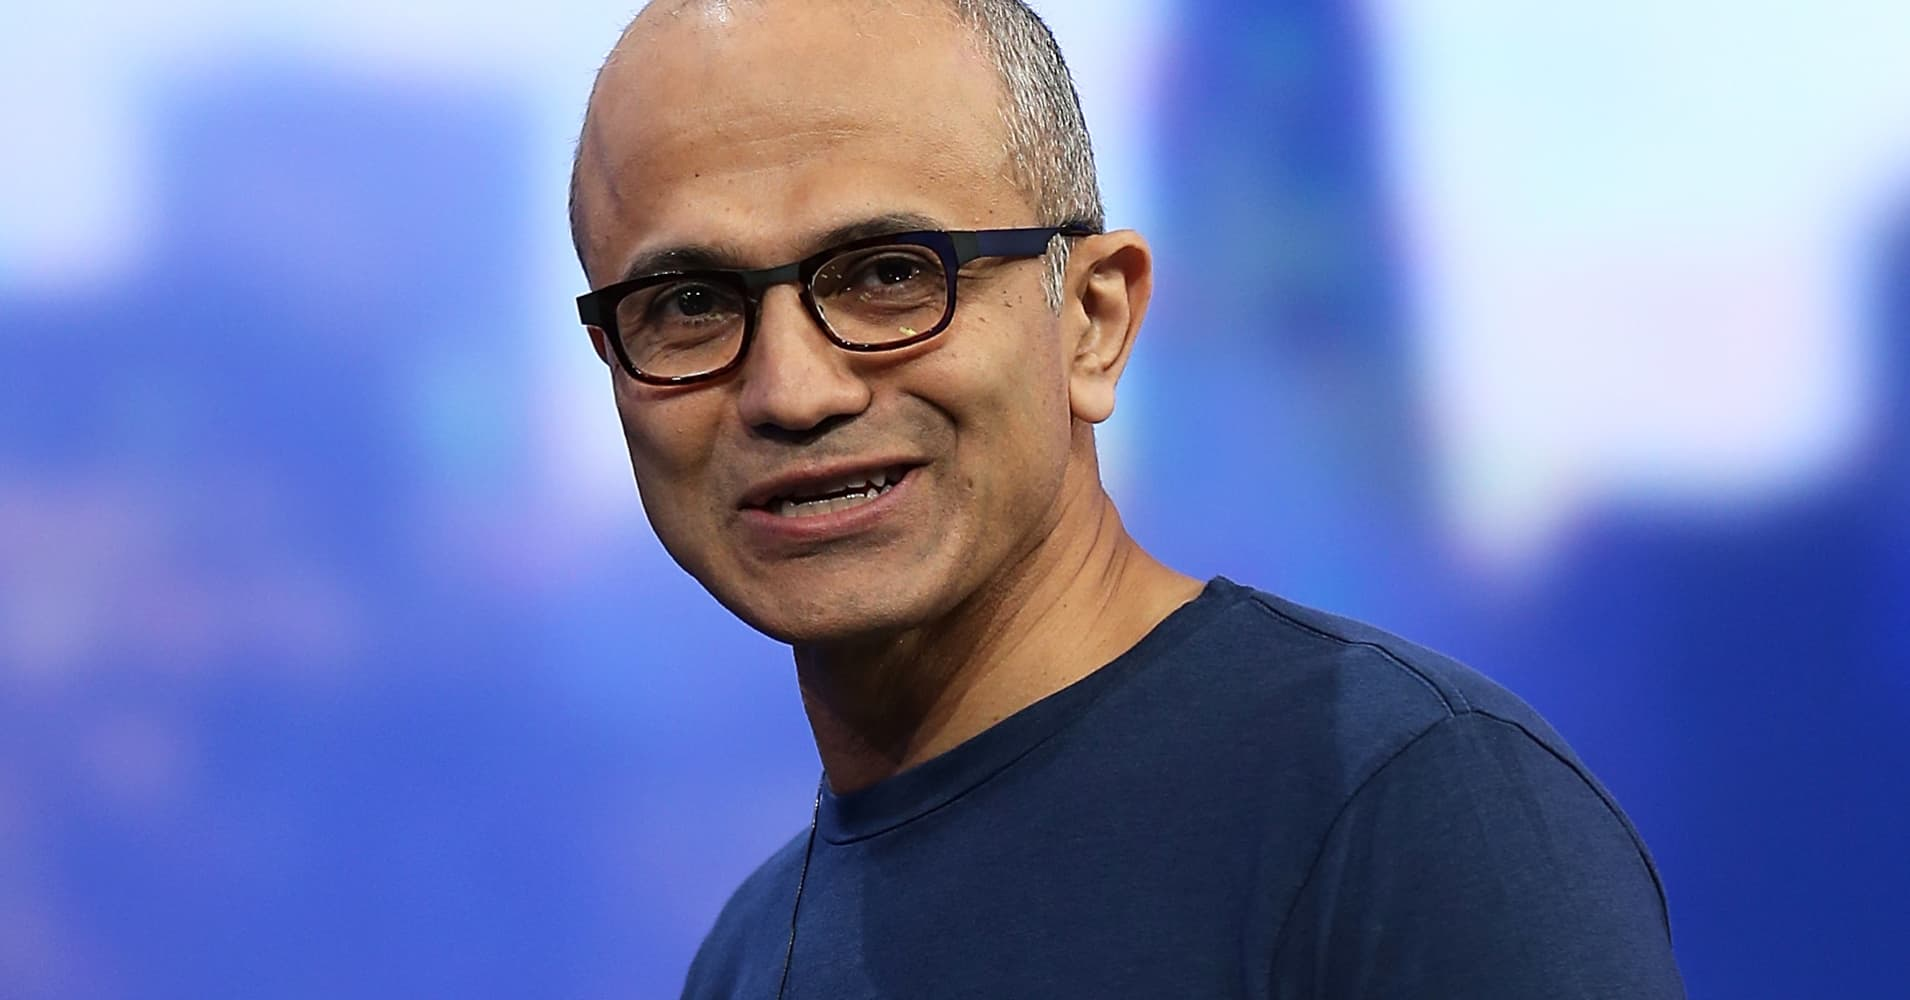 Bill Gates explains one area where Microsoft CEO Satya Nadella is a better leader than he is